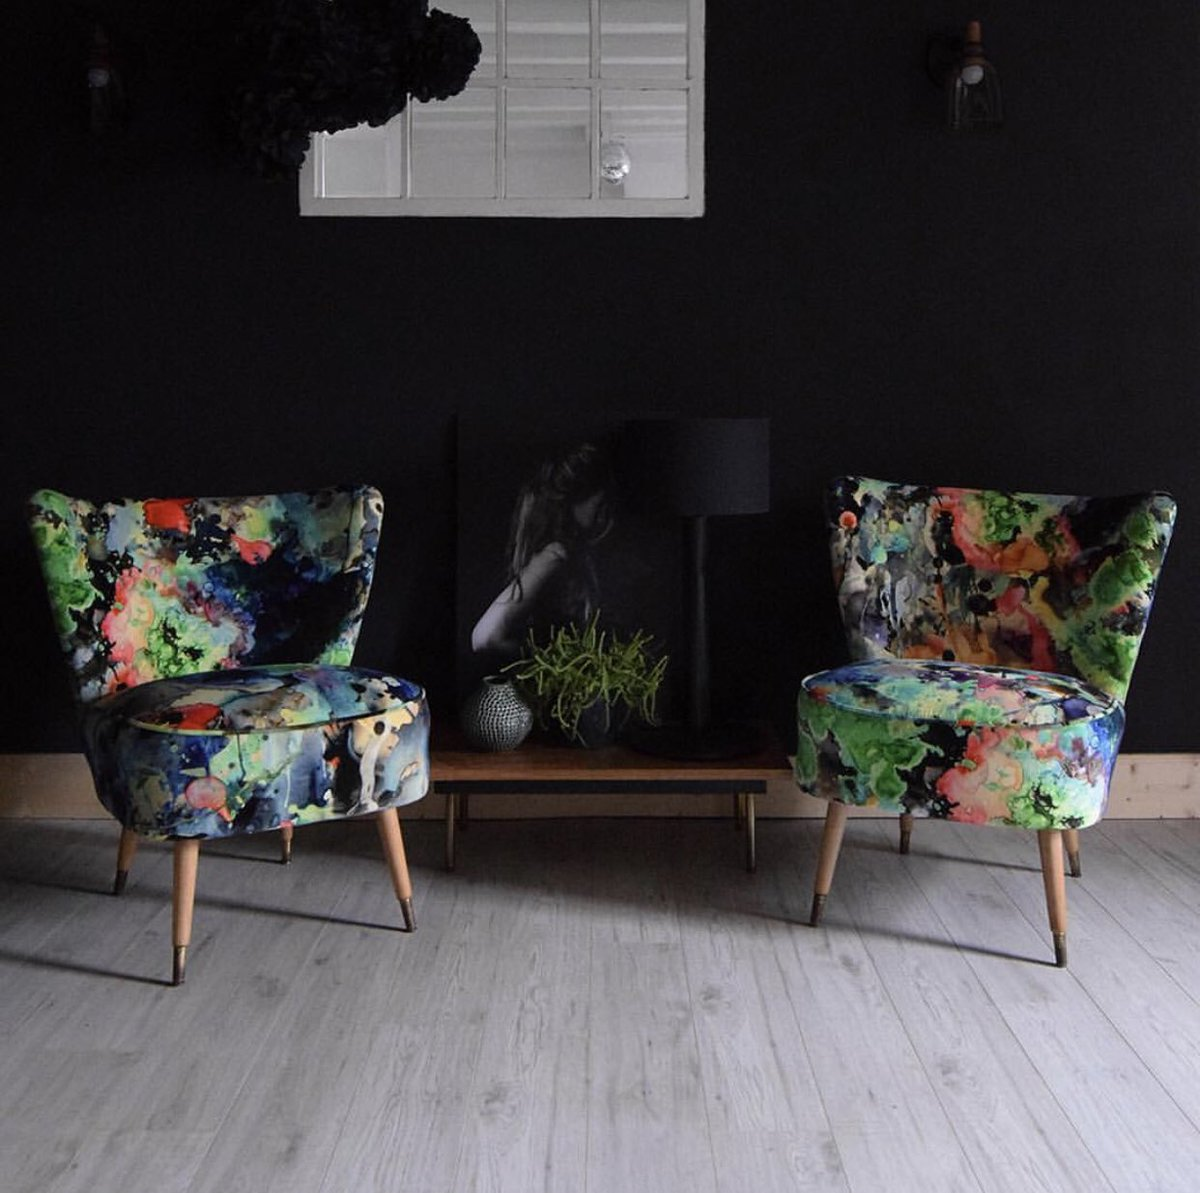 Neat bit of upholstery from #florrieandbill of a pair of vintage cocktail chairs featuring our Kaleido Splatt Velvet Fabric   #fabric #stoff #colour #farbe #pattern #muster #velvet #samt #upholstery #polster #vintagechairs #furniture #upholsteryfabrics #timorousbeasties pic.twitter.com/dv2nHD8xkz